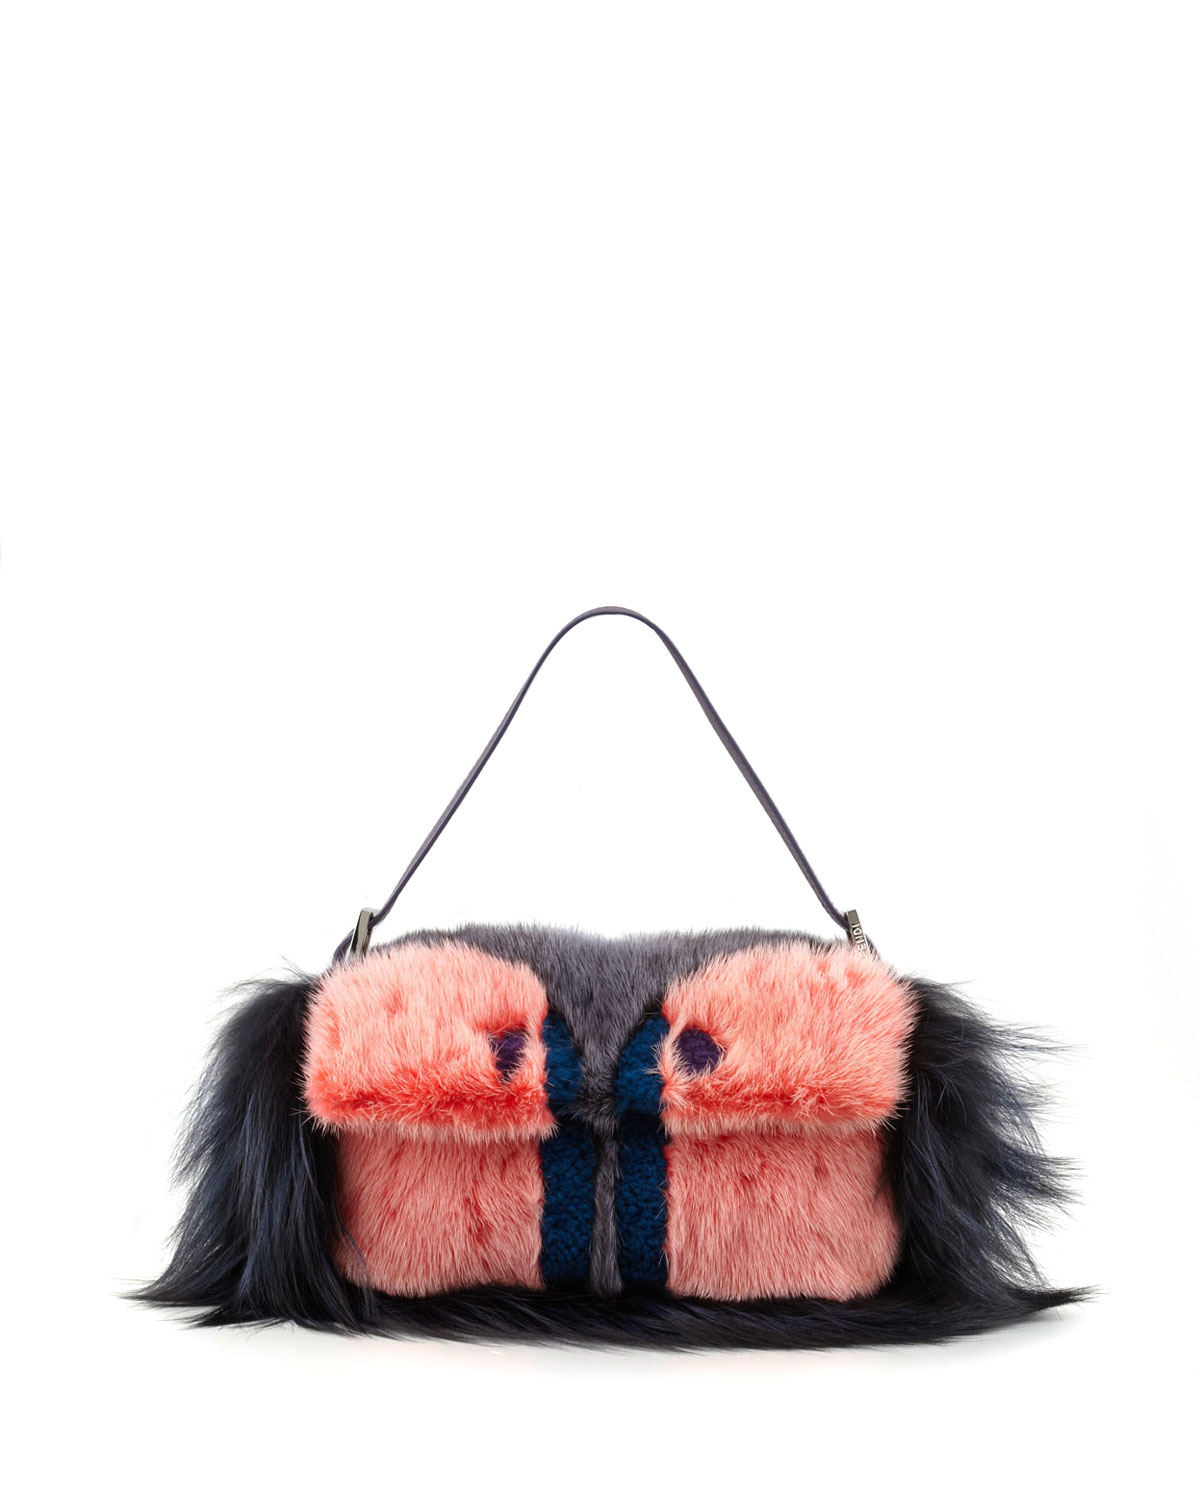 d192f8ee45 Add A Little Monster To Your Bag With a Fendi Fur Charm x Fendi ...